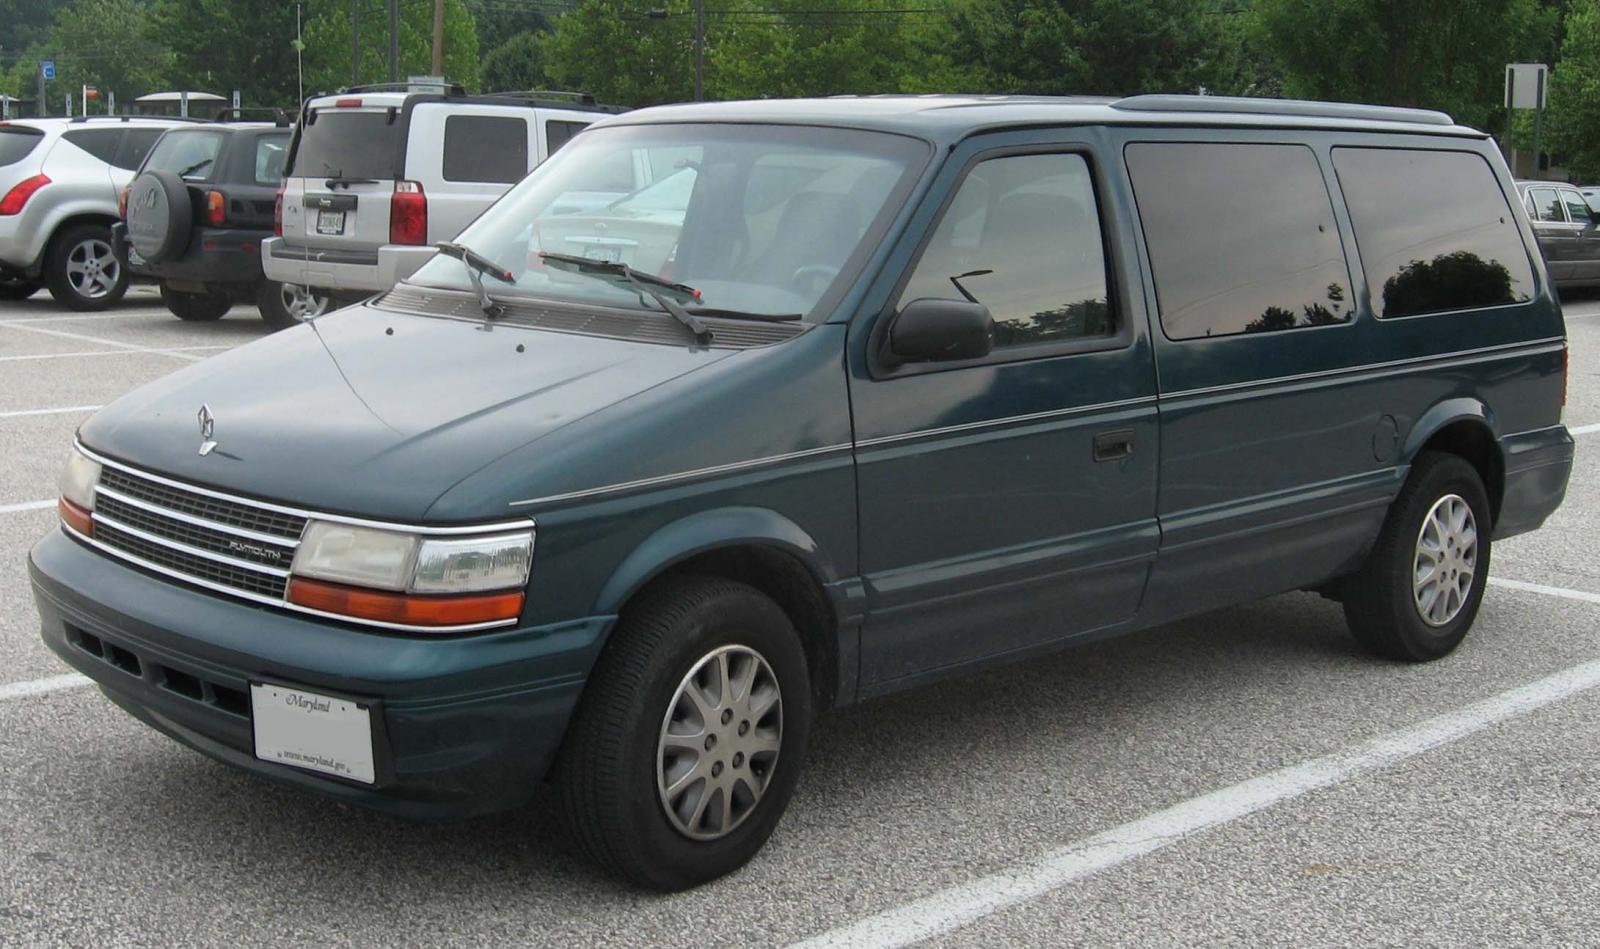 1994 Plymouth Voyager #2 Plymouth Voyager #2 800 1024 1280 1600 origin ...